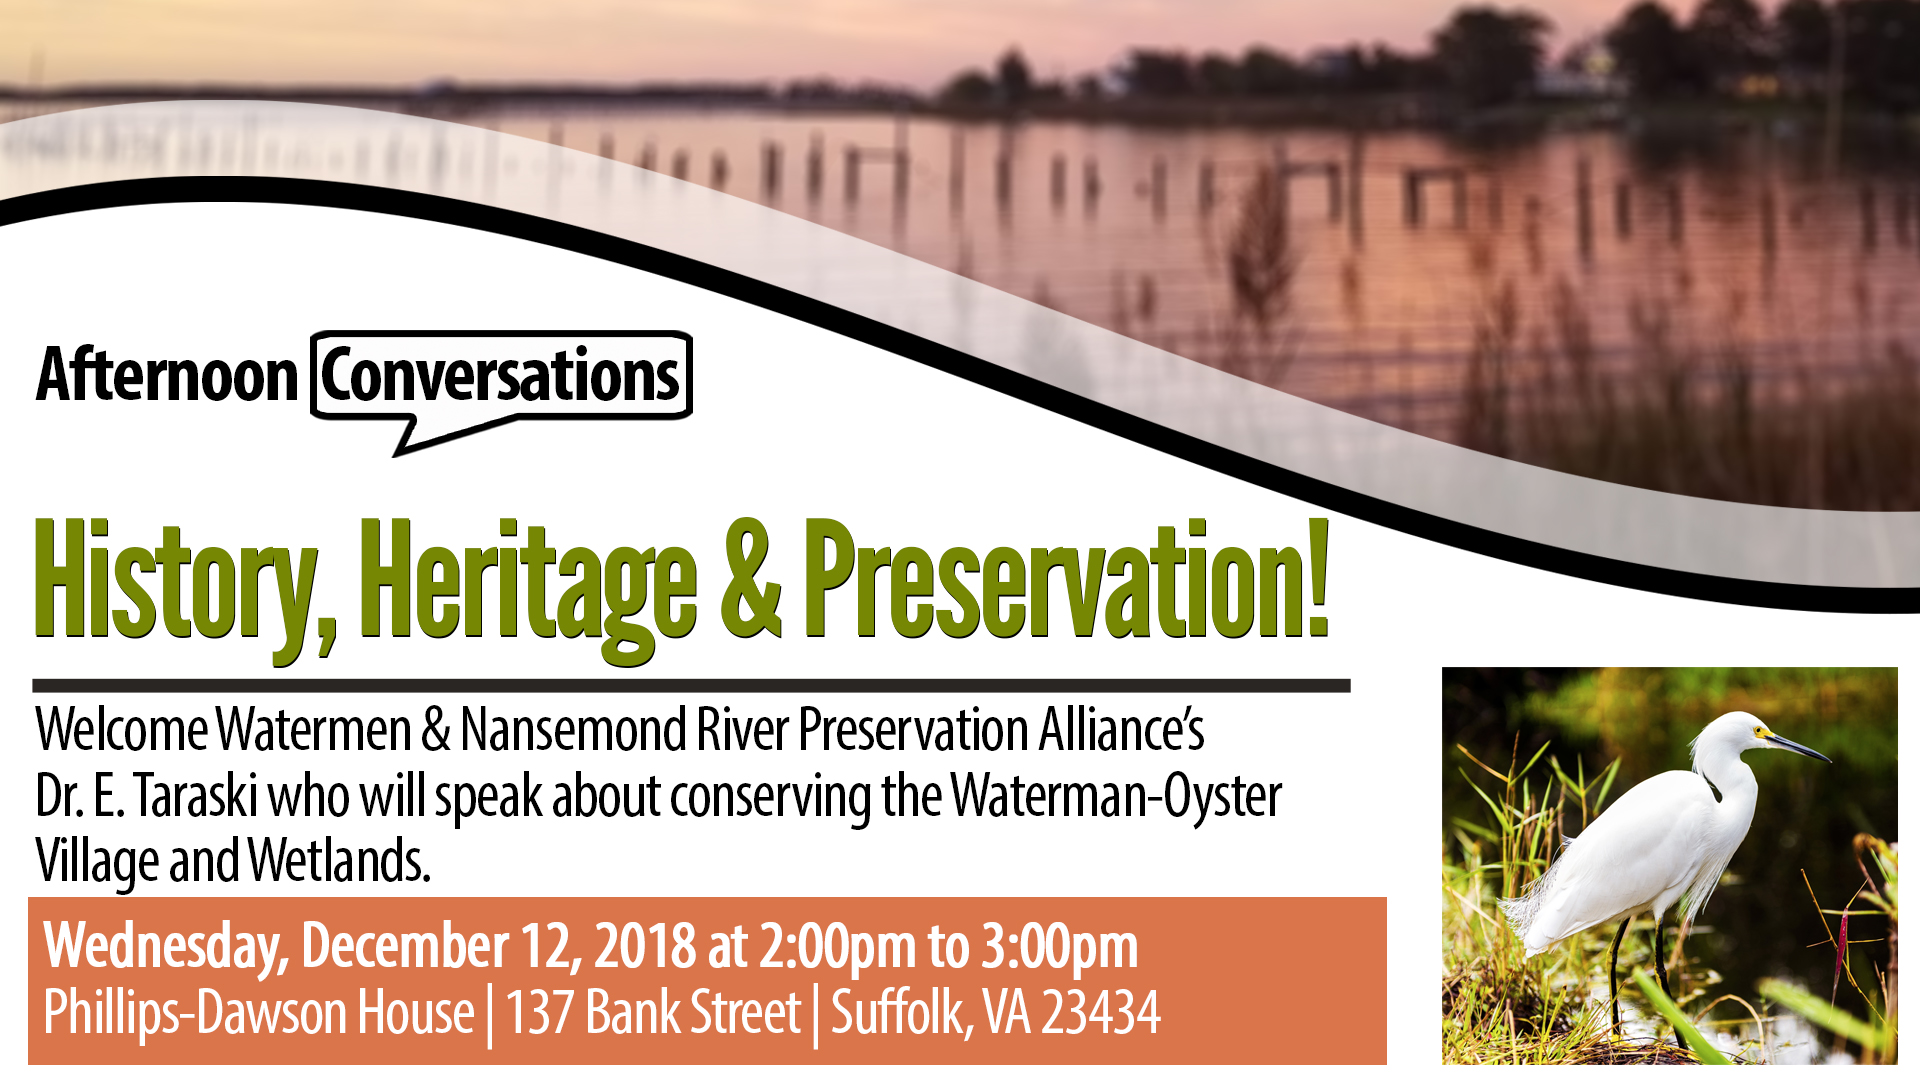 Afternoon Conversations: History, Heritage & Preservation!